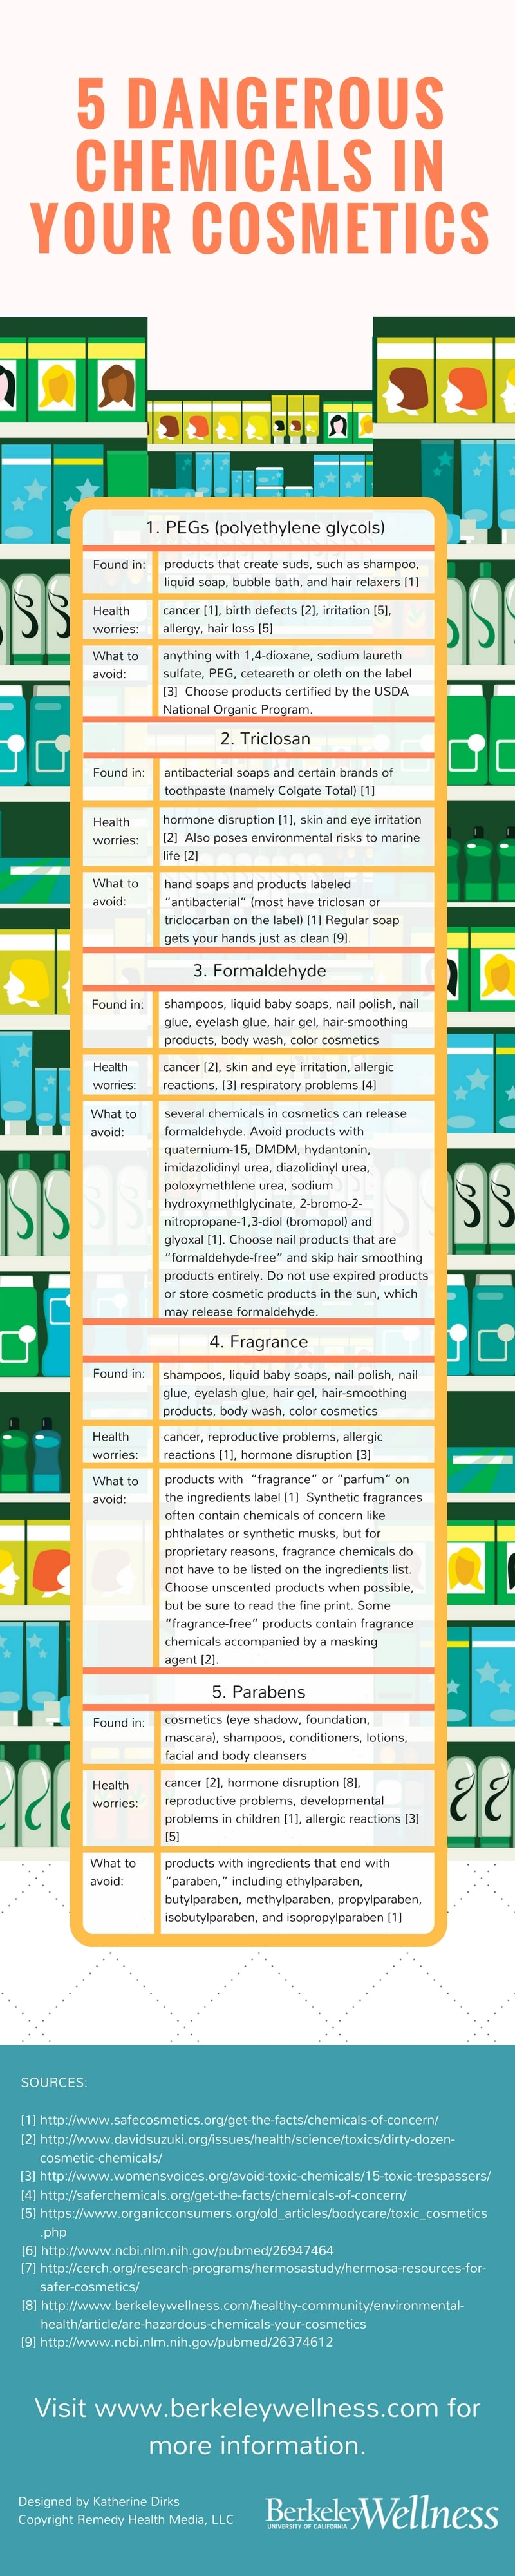 You Need To Check Your Cosmetics For These 5 Dangerous Chemicals Infographic